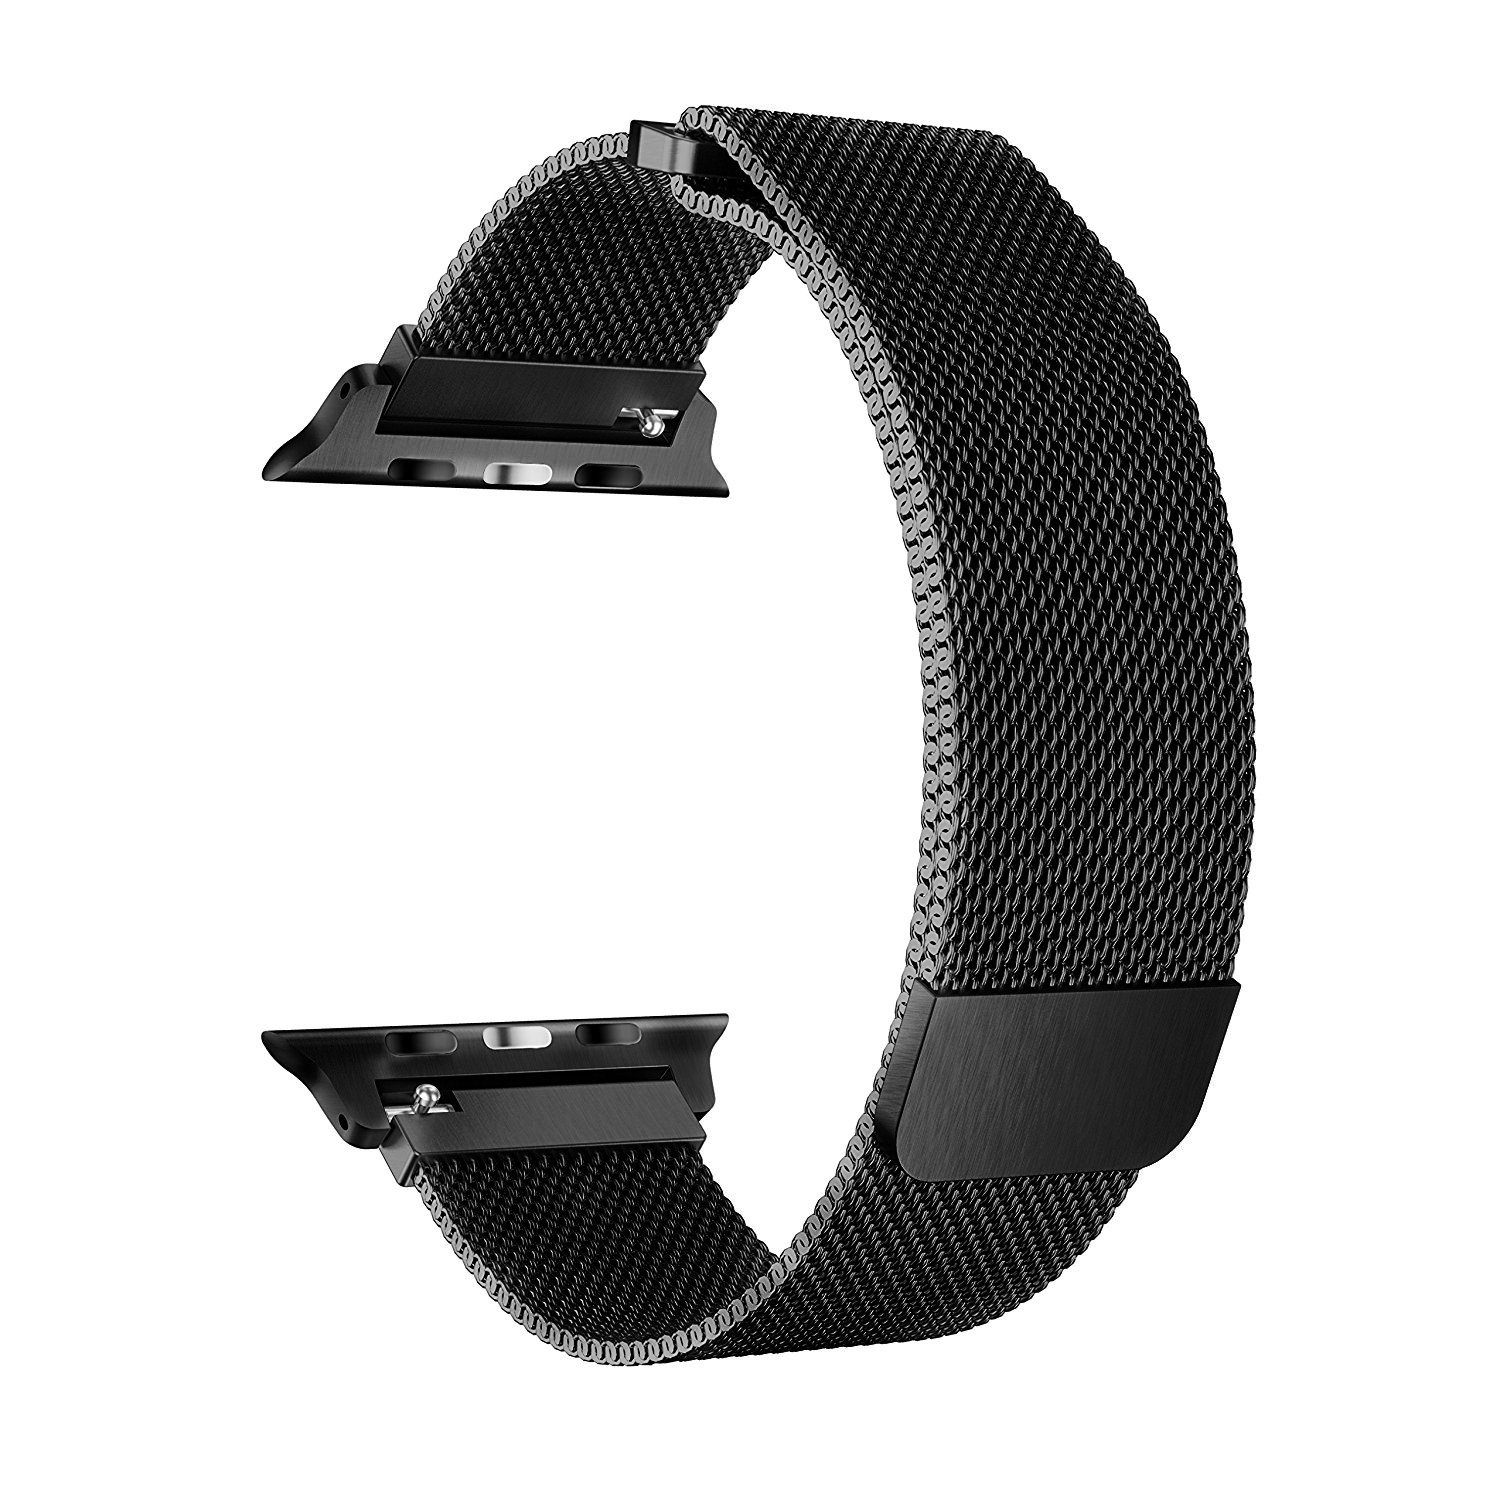 CTYBB for Apple Watch Band 42mm, Milanese Loop Stainless Steel Magnetic Lock iWatch Band for Apple Watch Series 3, Series 2, Series 1, Sport & Edition (Black)